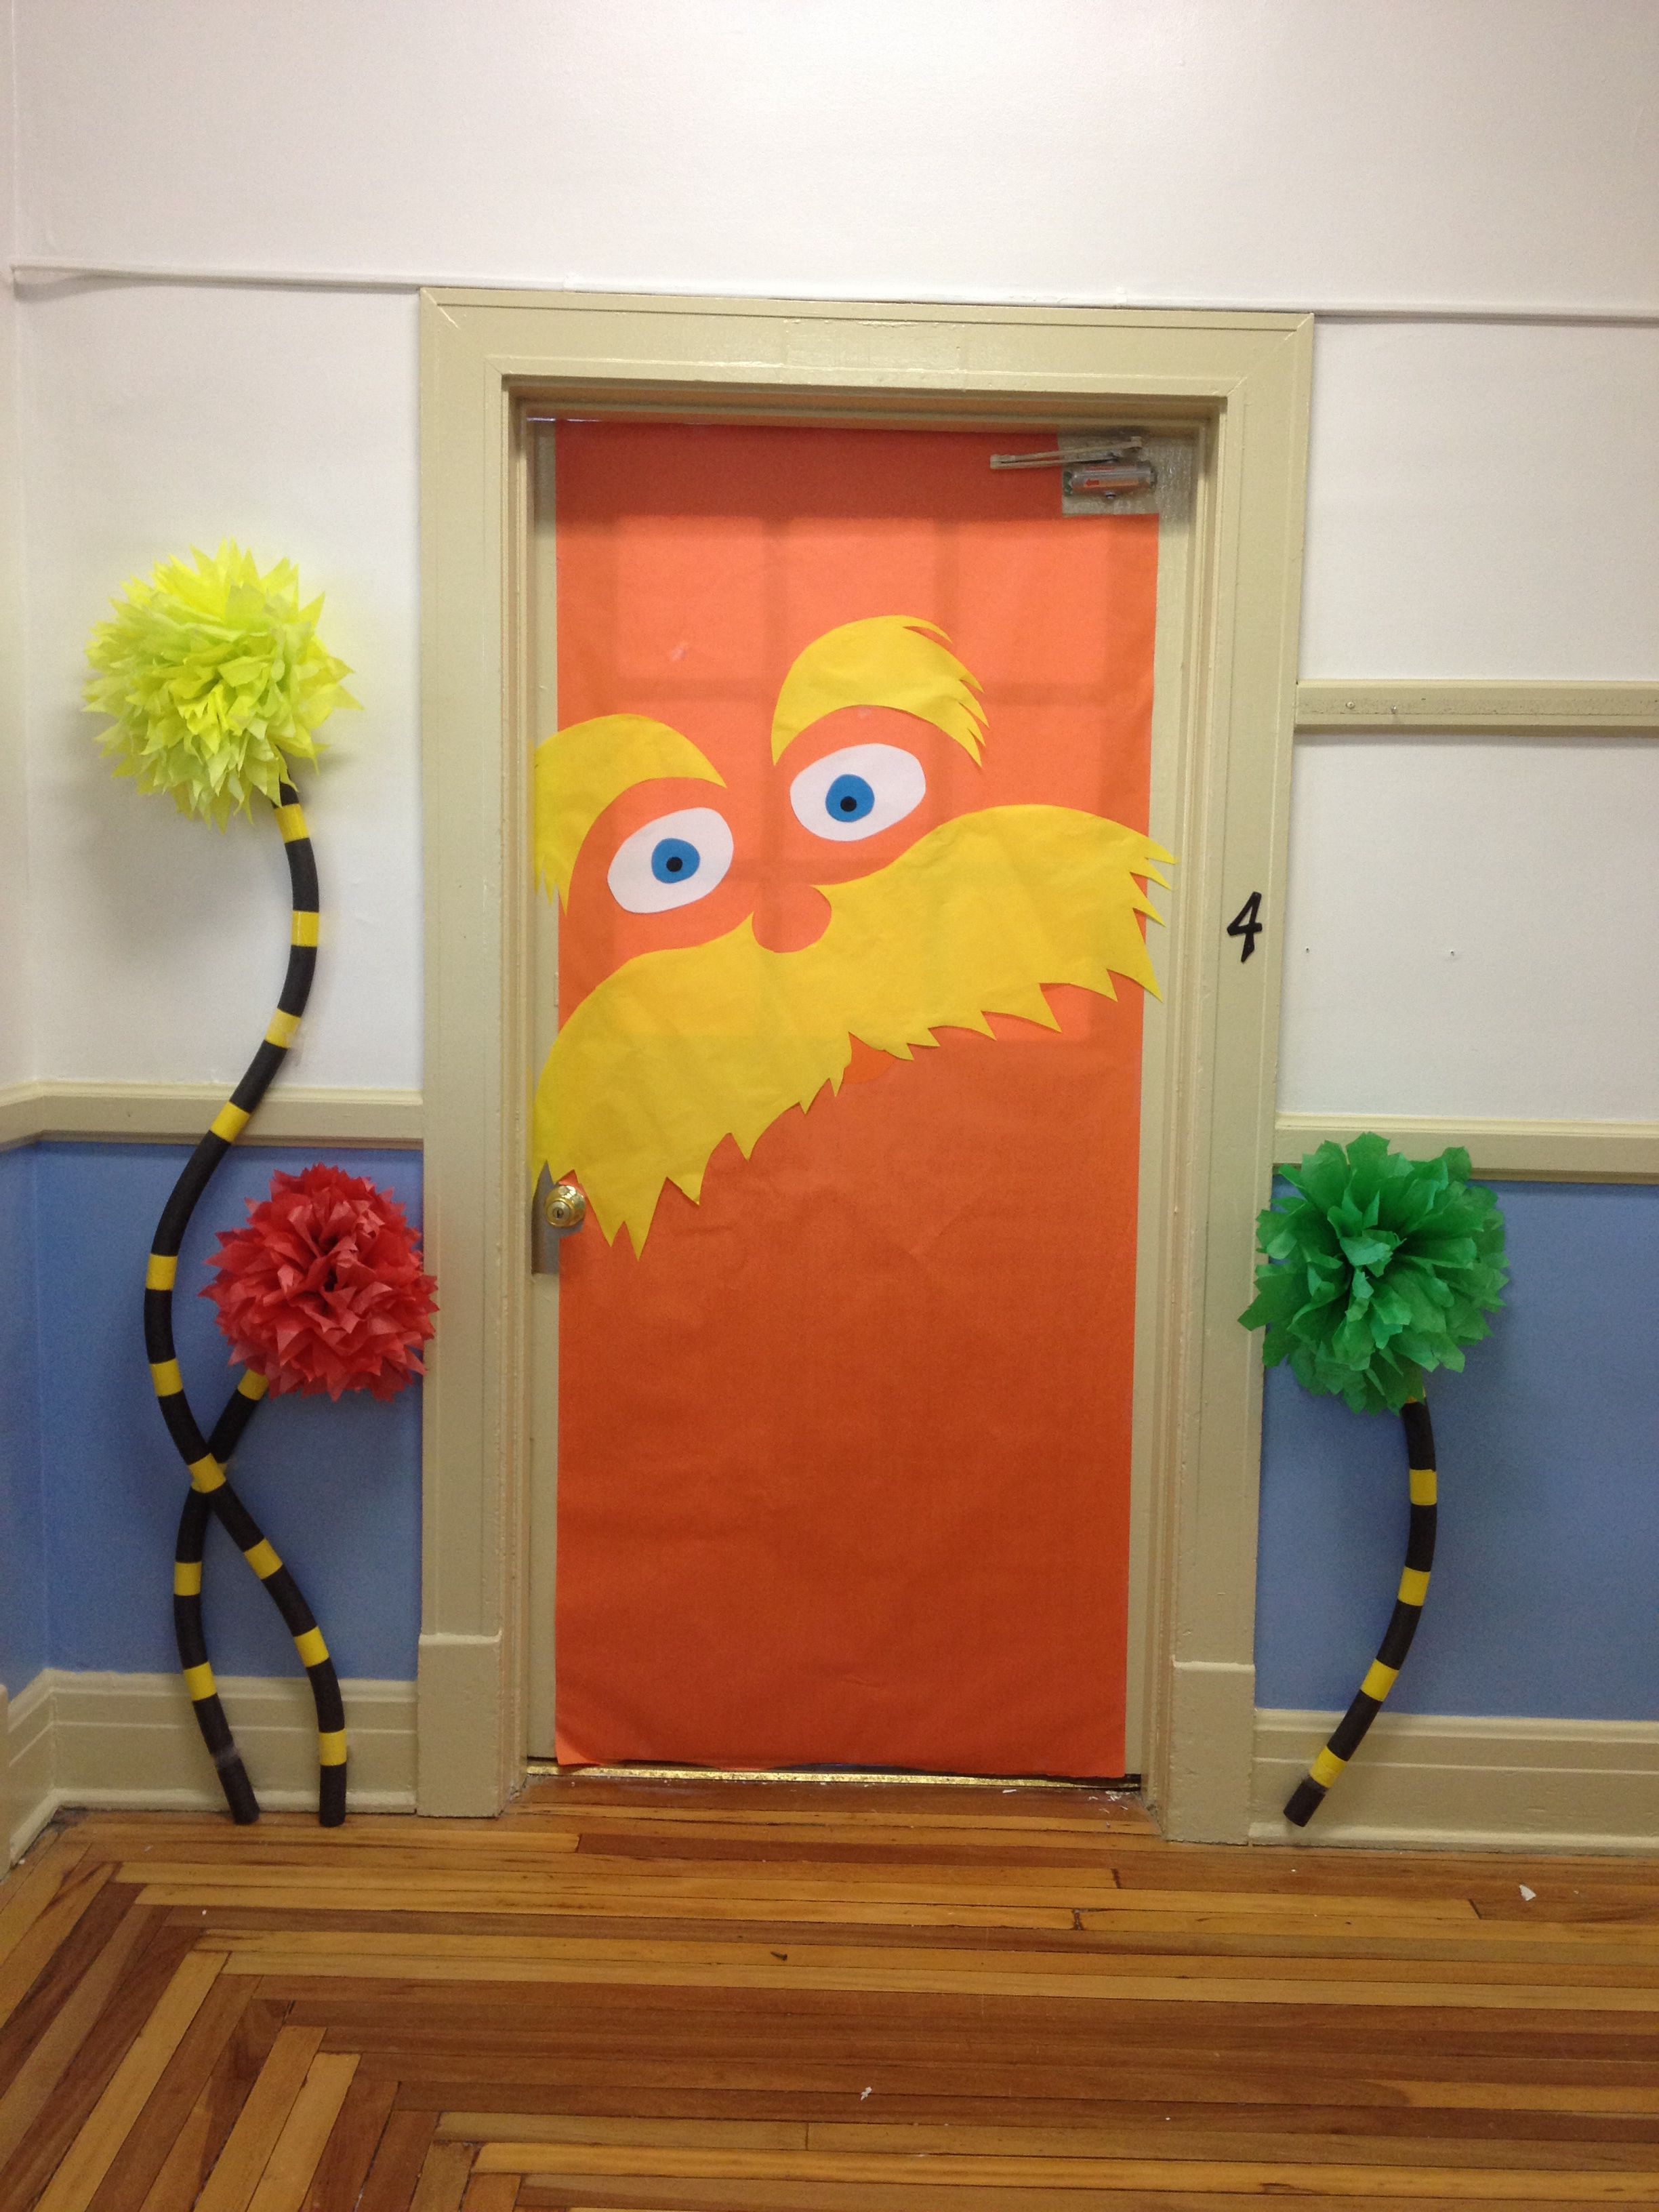 Decorating the classroom door for the kiddos to get excited about